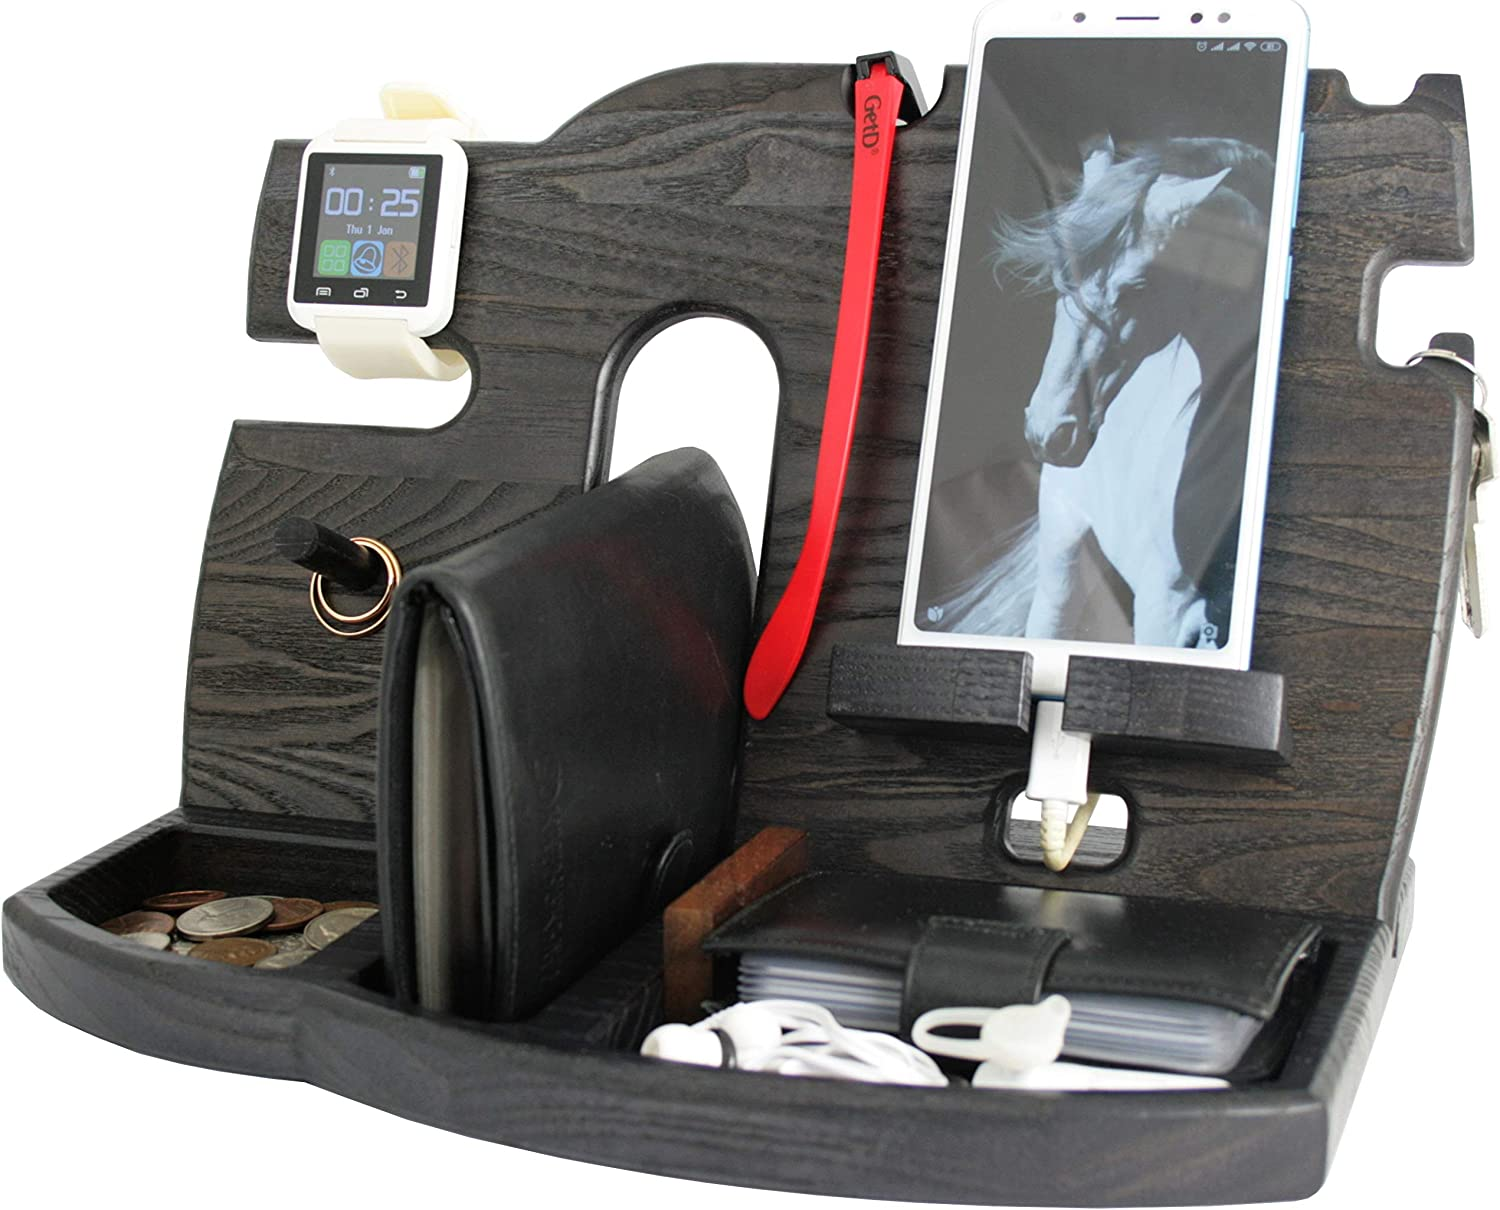 Wood Cell Phone Stand Smartwatch Wallet Holder. Man Cave Decor Multiple Gadget Dock Mobile Accessory Organizer. Nightstand Charging Docking Station ...